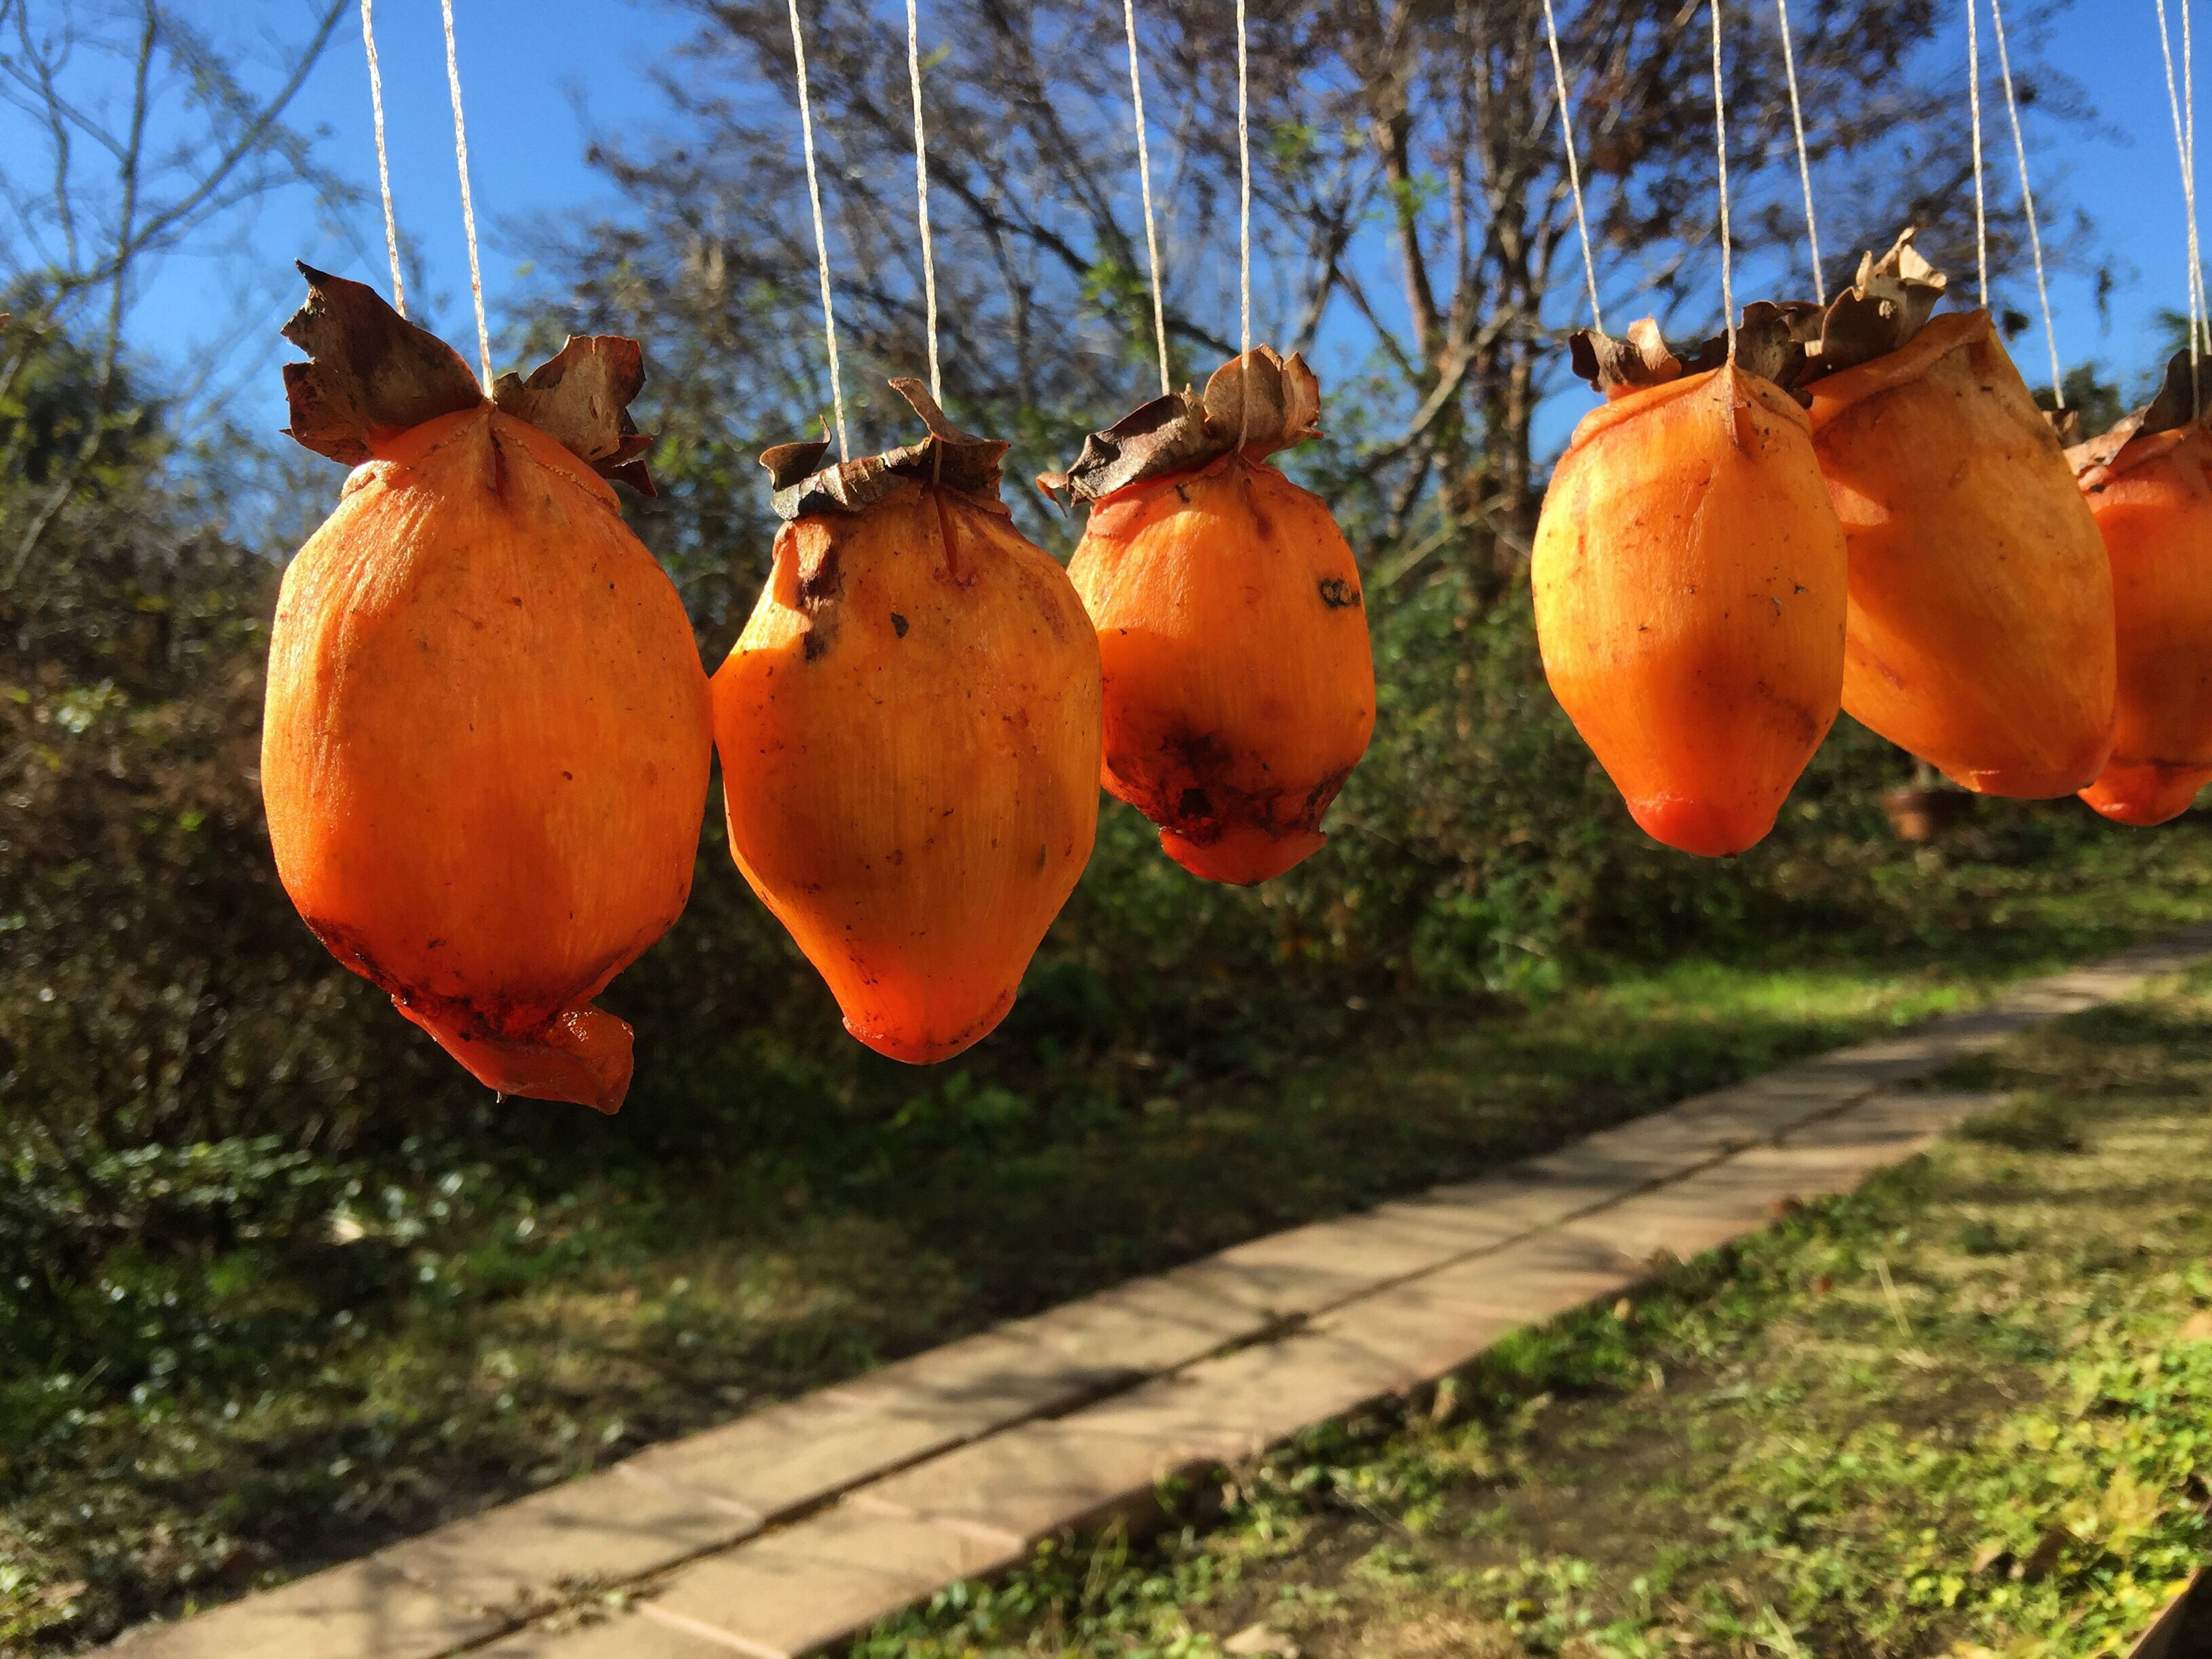 tree, fruit, focus on foreground, orange color, growth, nature, hanging, sunlight, outdoors, food and drink, persimmon, freshness, no people, day, food, close-up, sky